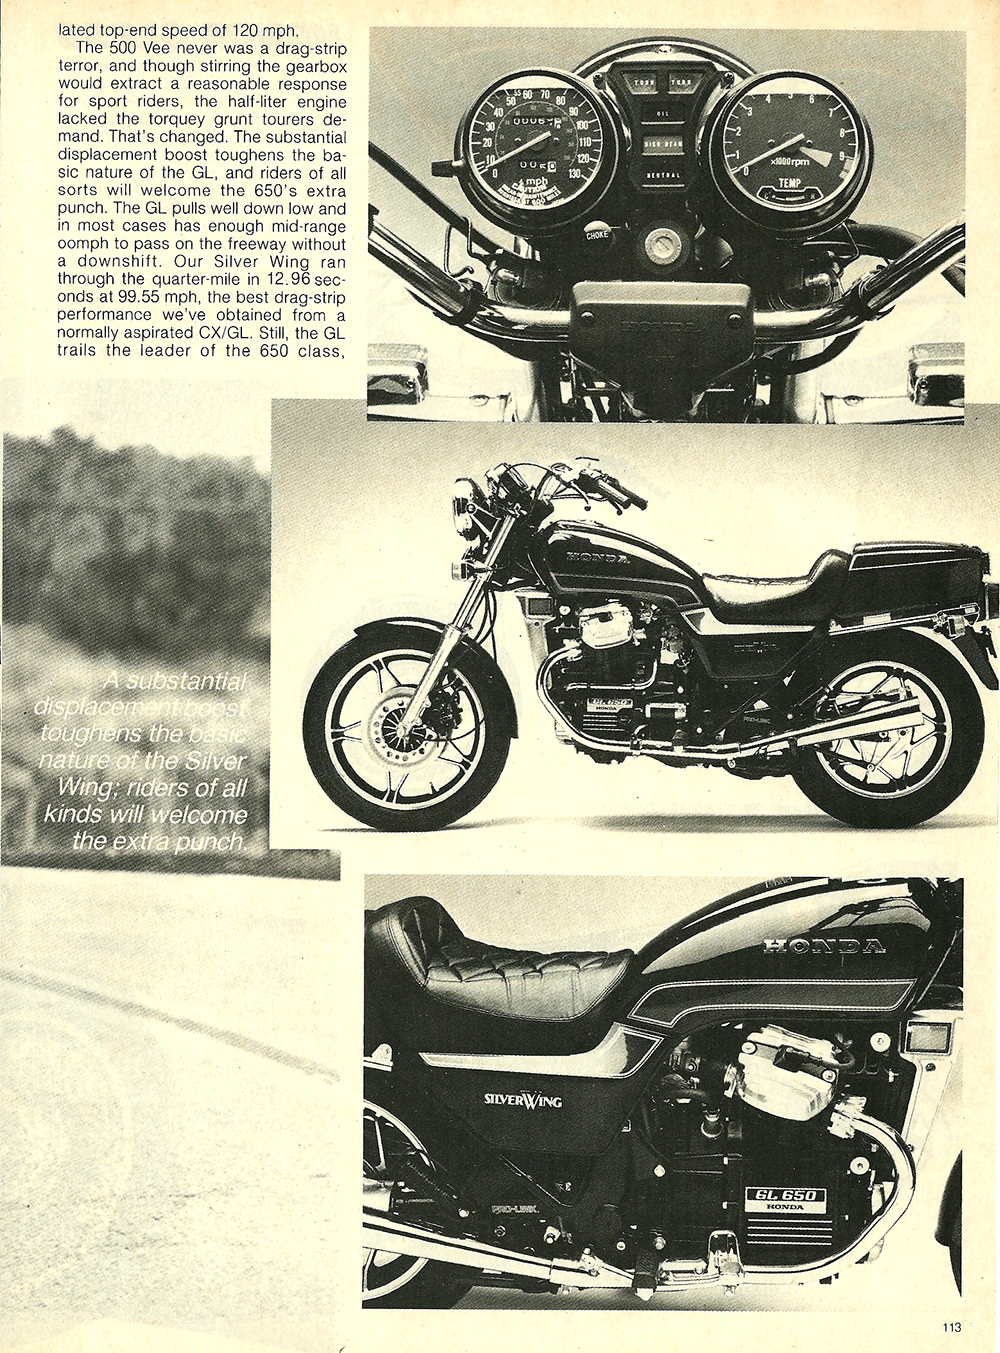 1983 Honda GL650 Silver Wing road test 3.jpg